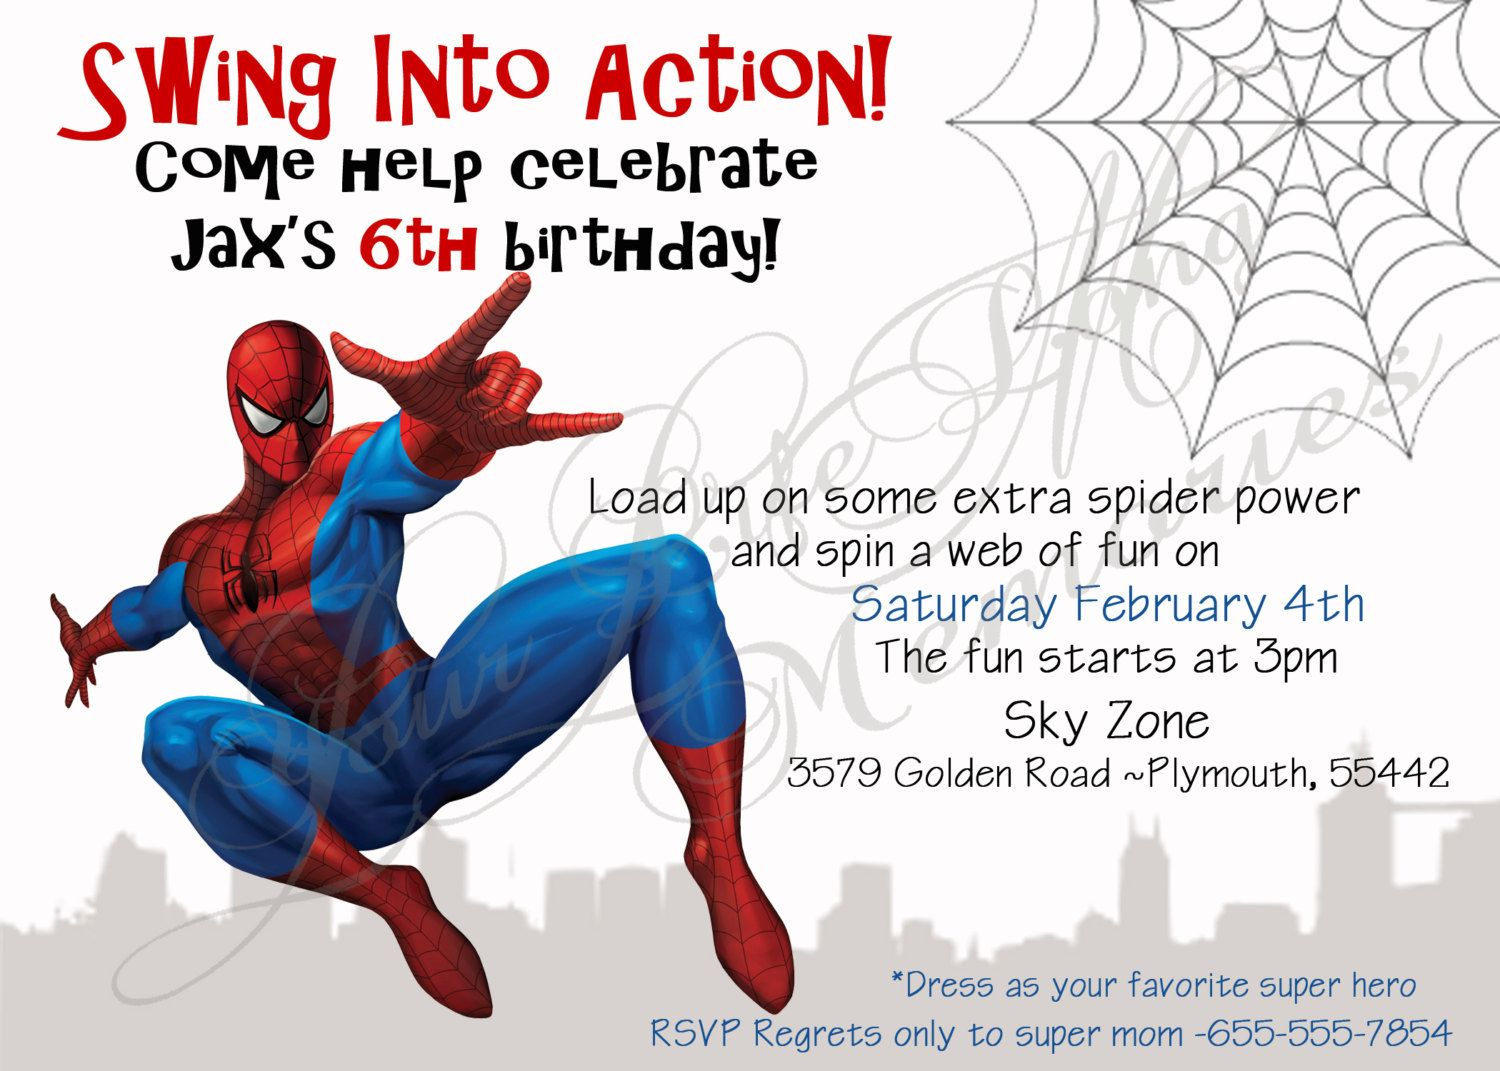 Spiderman Birthday Invitations Free Printable Spiderman - Party invitation template: birthday party invitation template free online